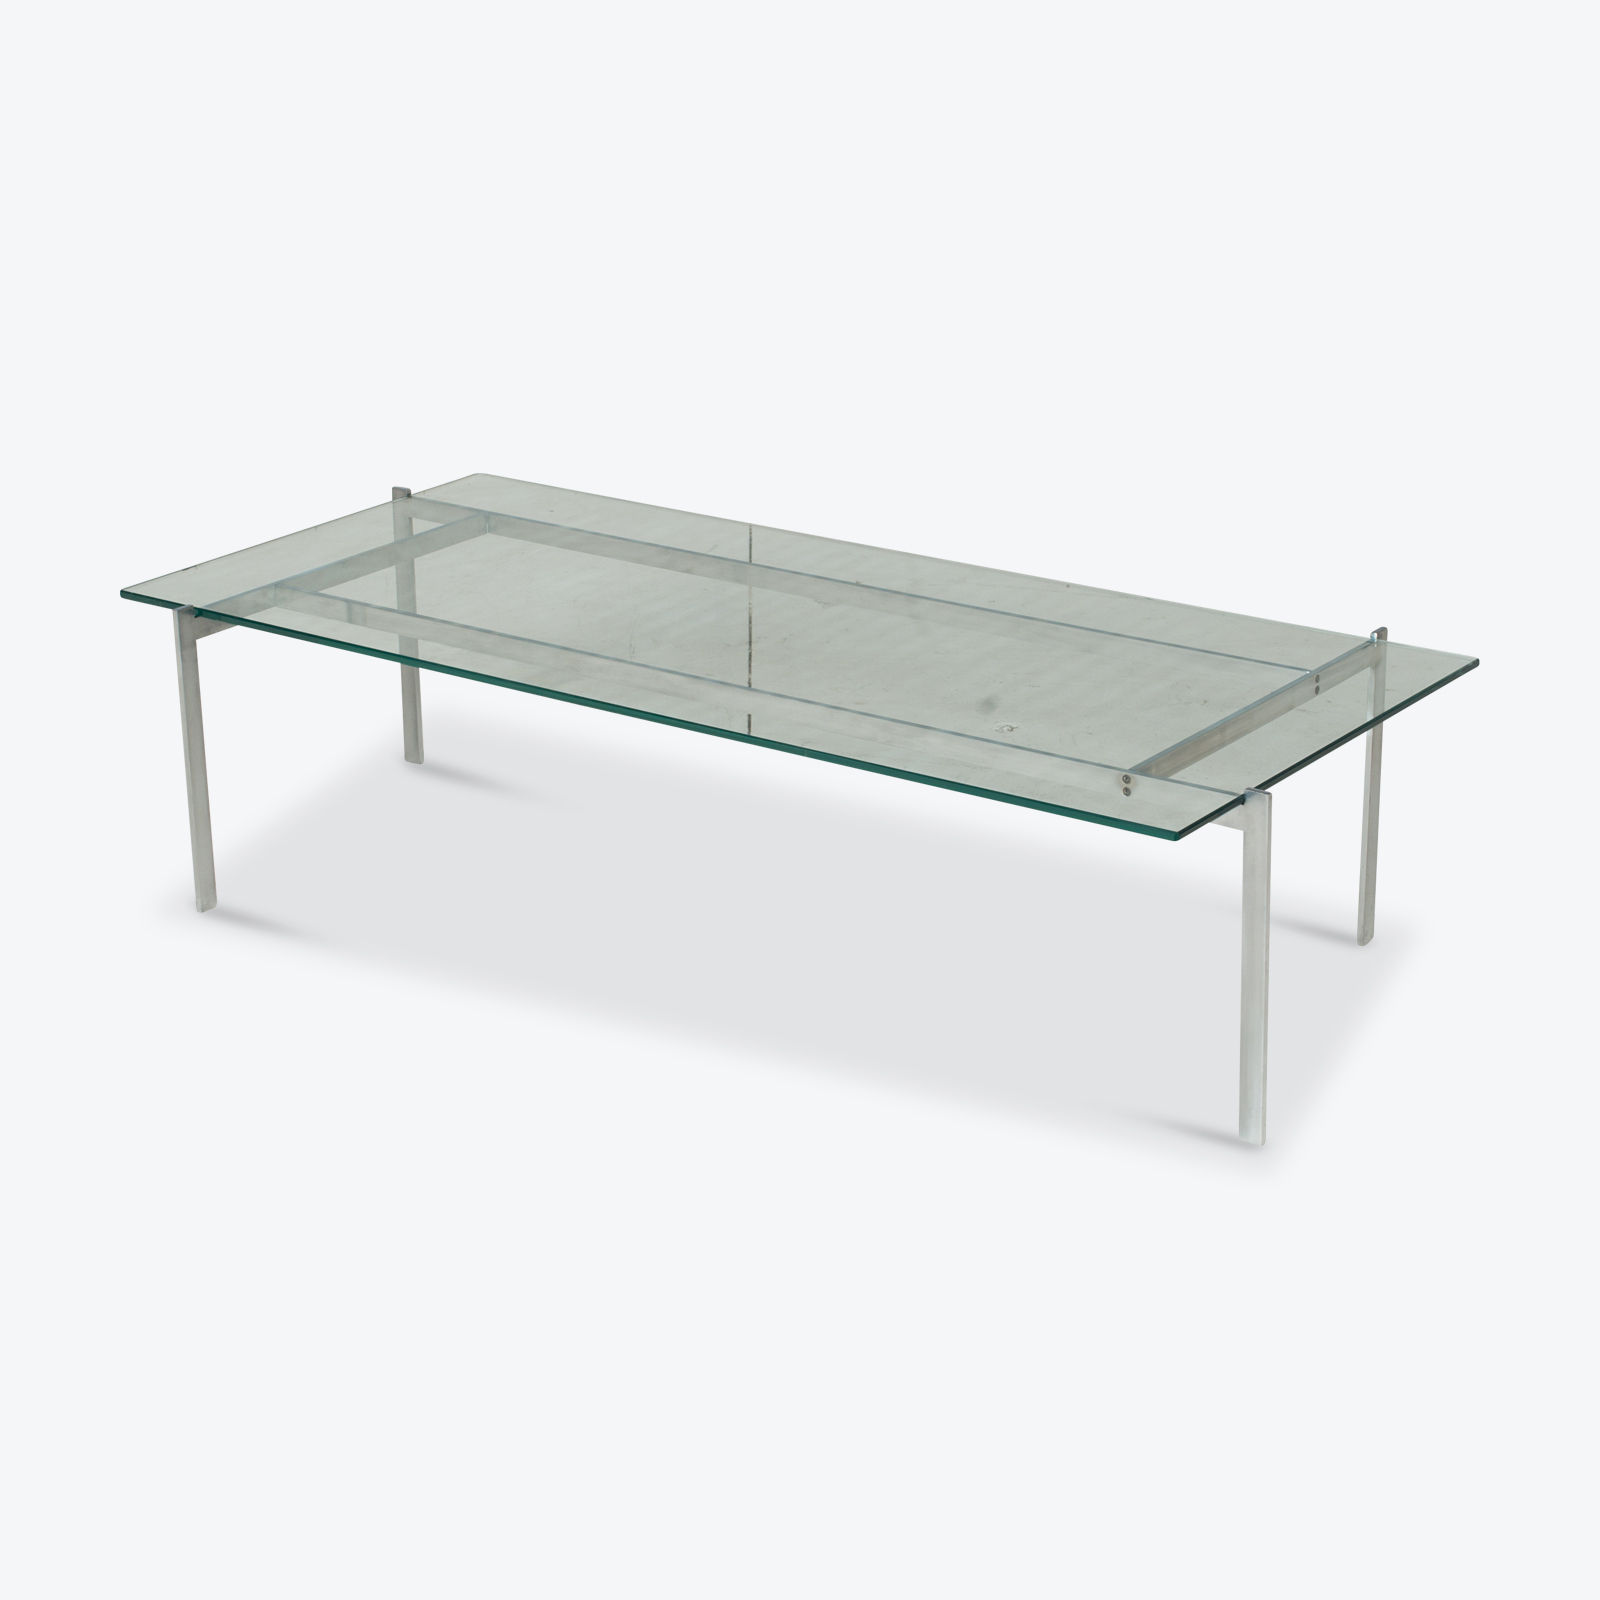 Coffee Table In The Style Of Poul Kjaerholm With Chrome And Glass, 1960s, Netherlands